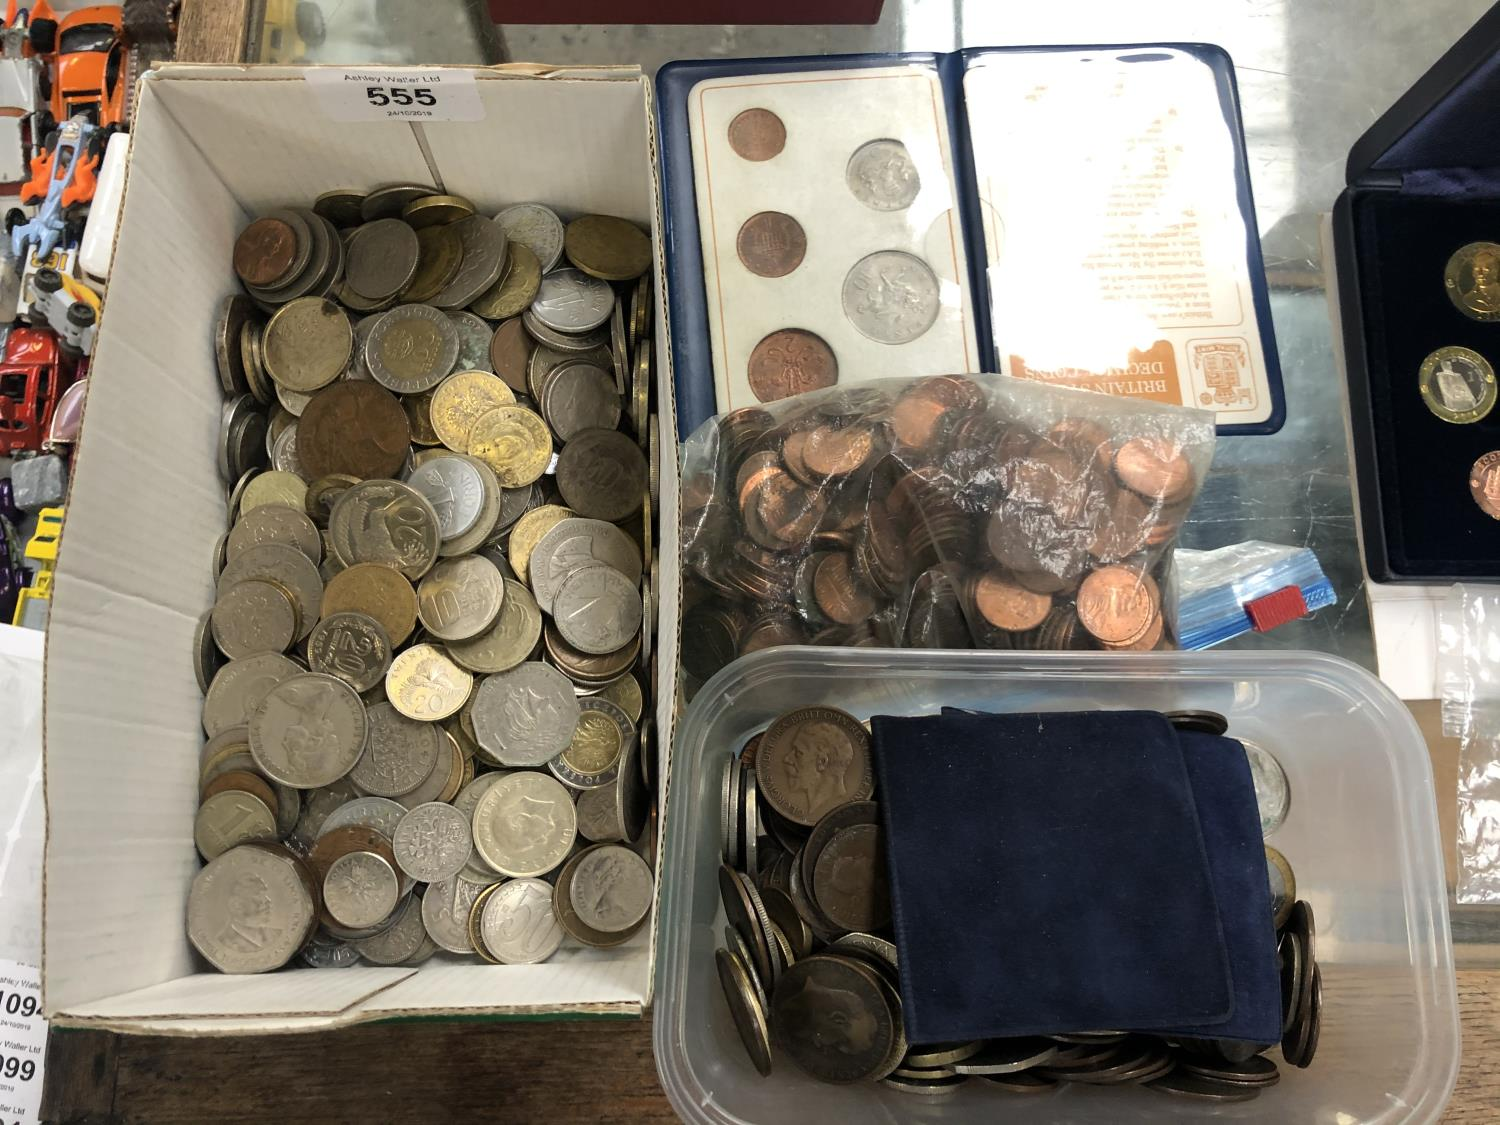 Lot 555 - A MIXED LOT OF COINAGE, BAG OF AMERICAN CENTS, DECIMAL COIN SET, TWO BOXES OF MIXED COINS (QTY)